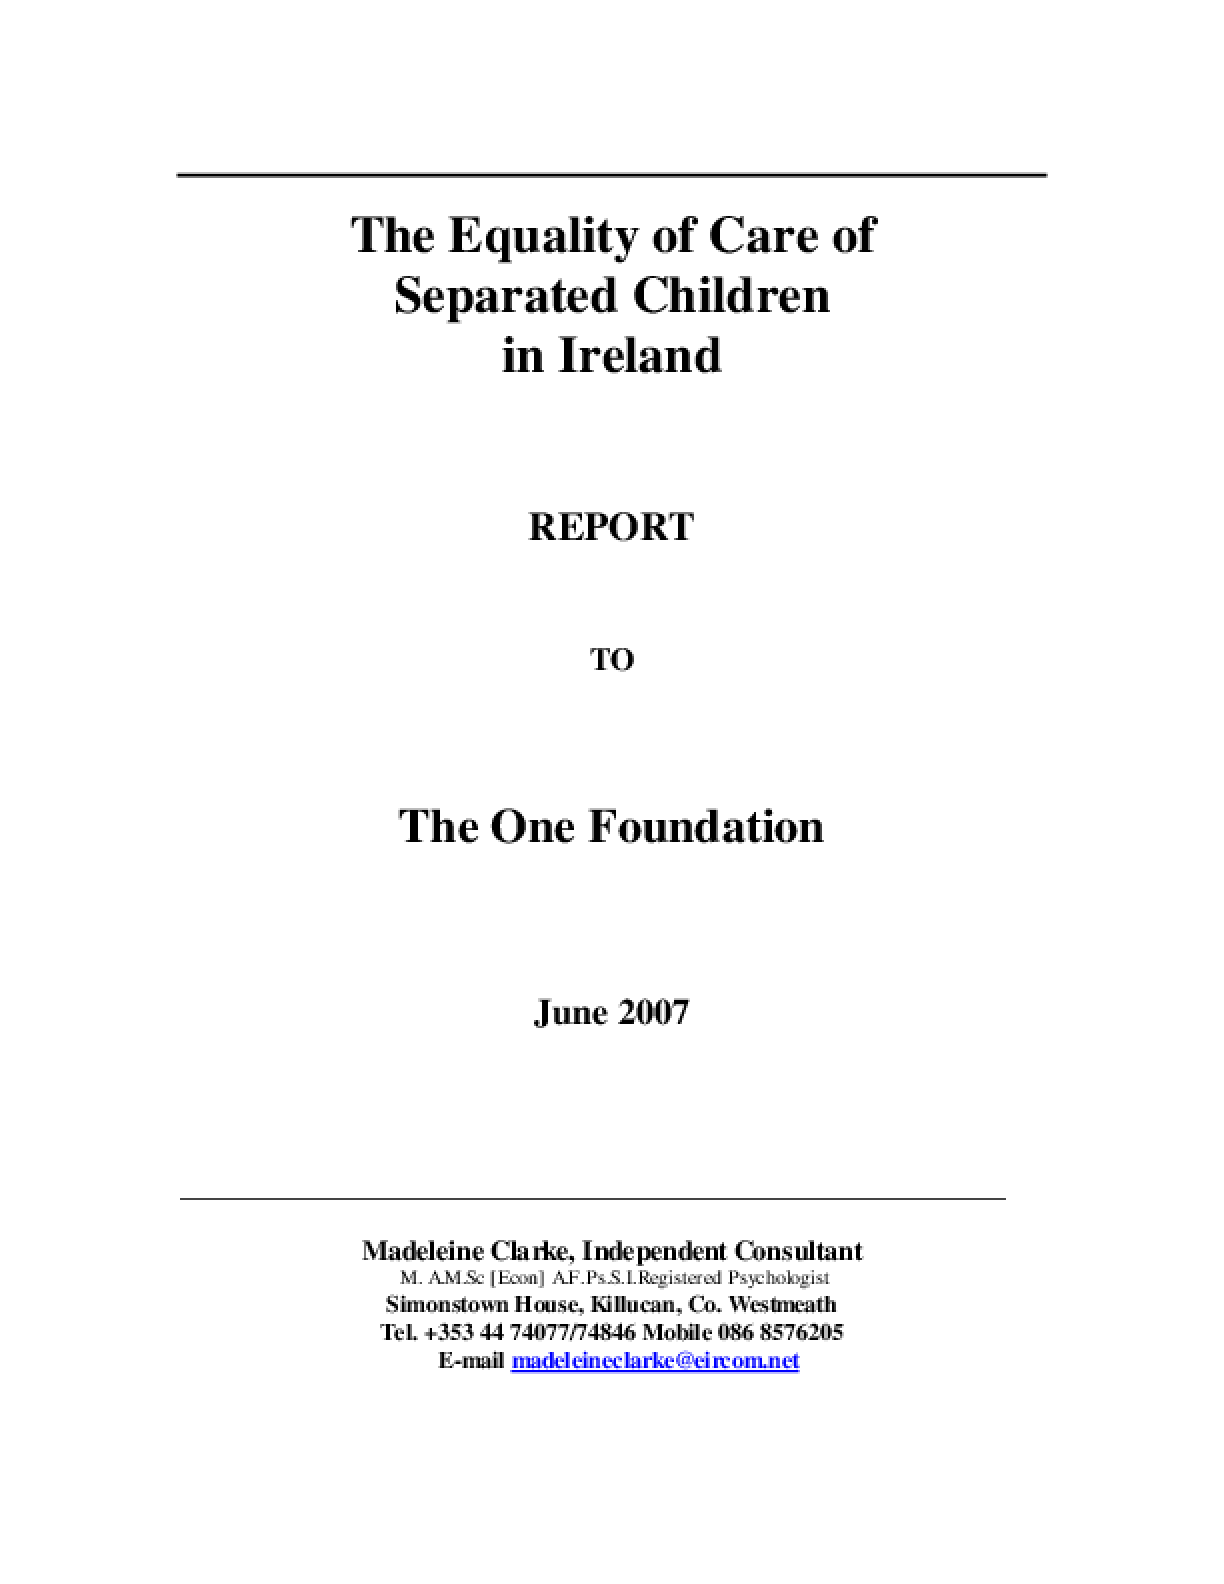 The Equality of Care of Separated Children in Ireland: Report to The One Foundation